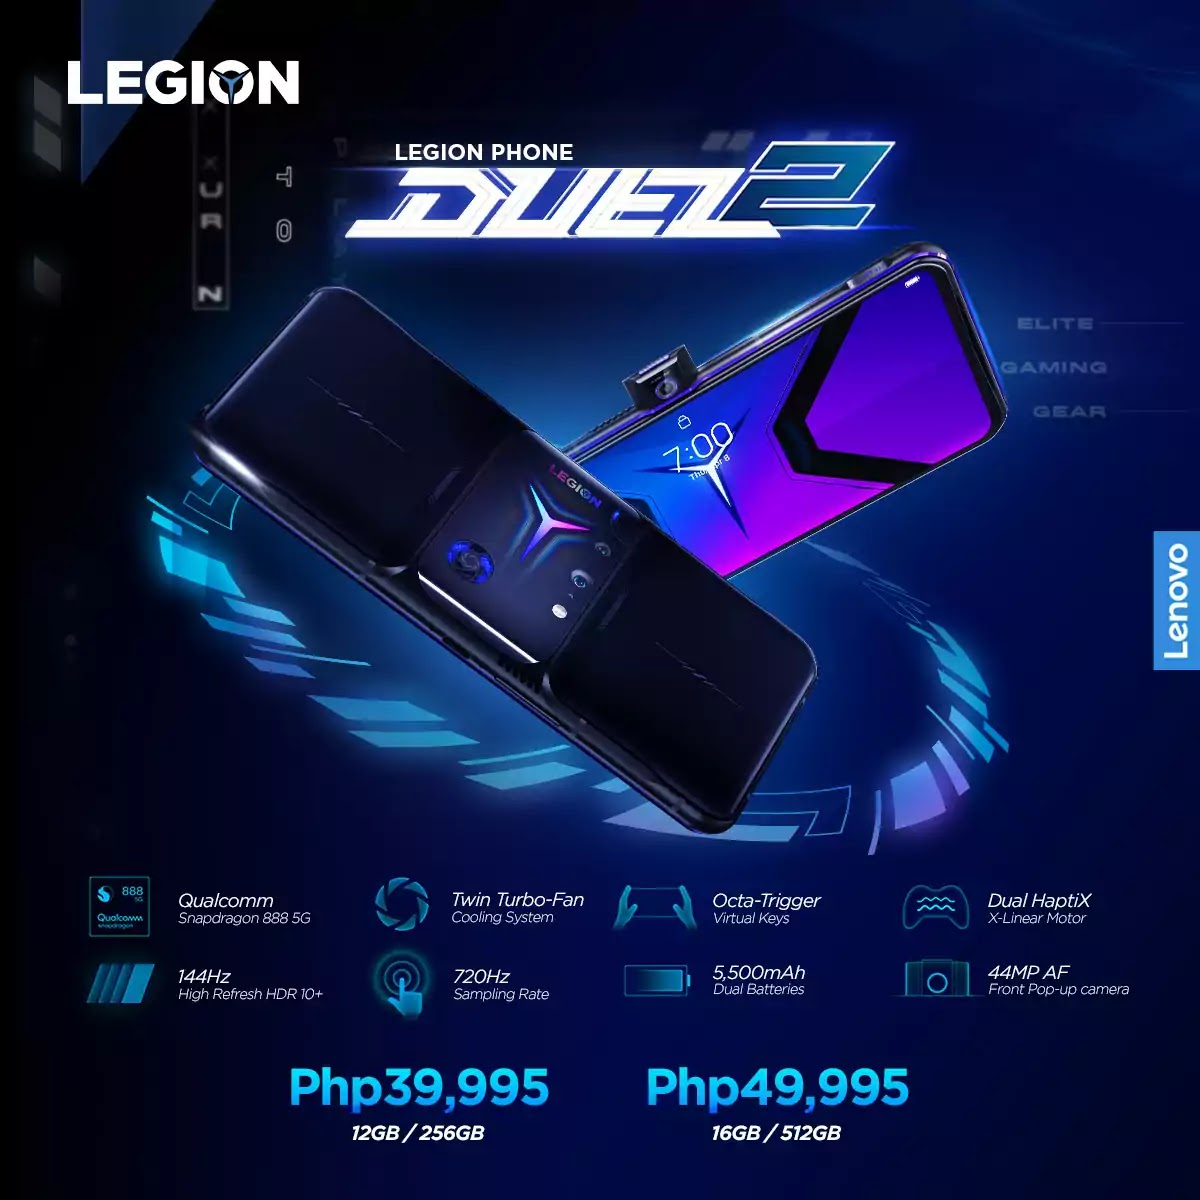 Legion Phone Duel 2 Key Features and Price